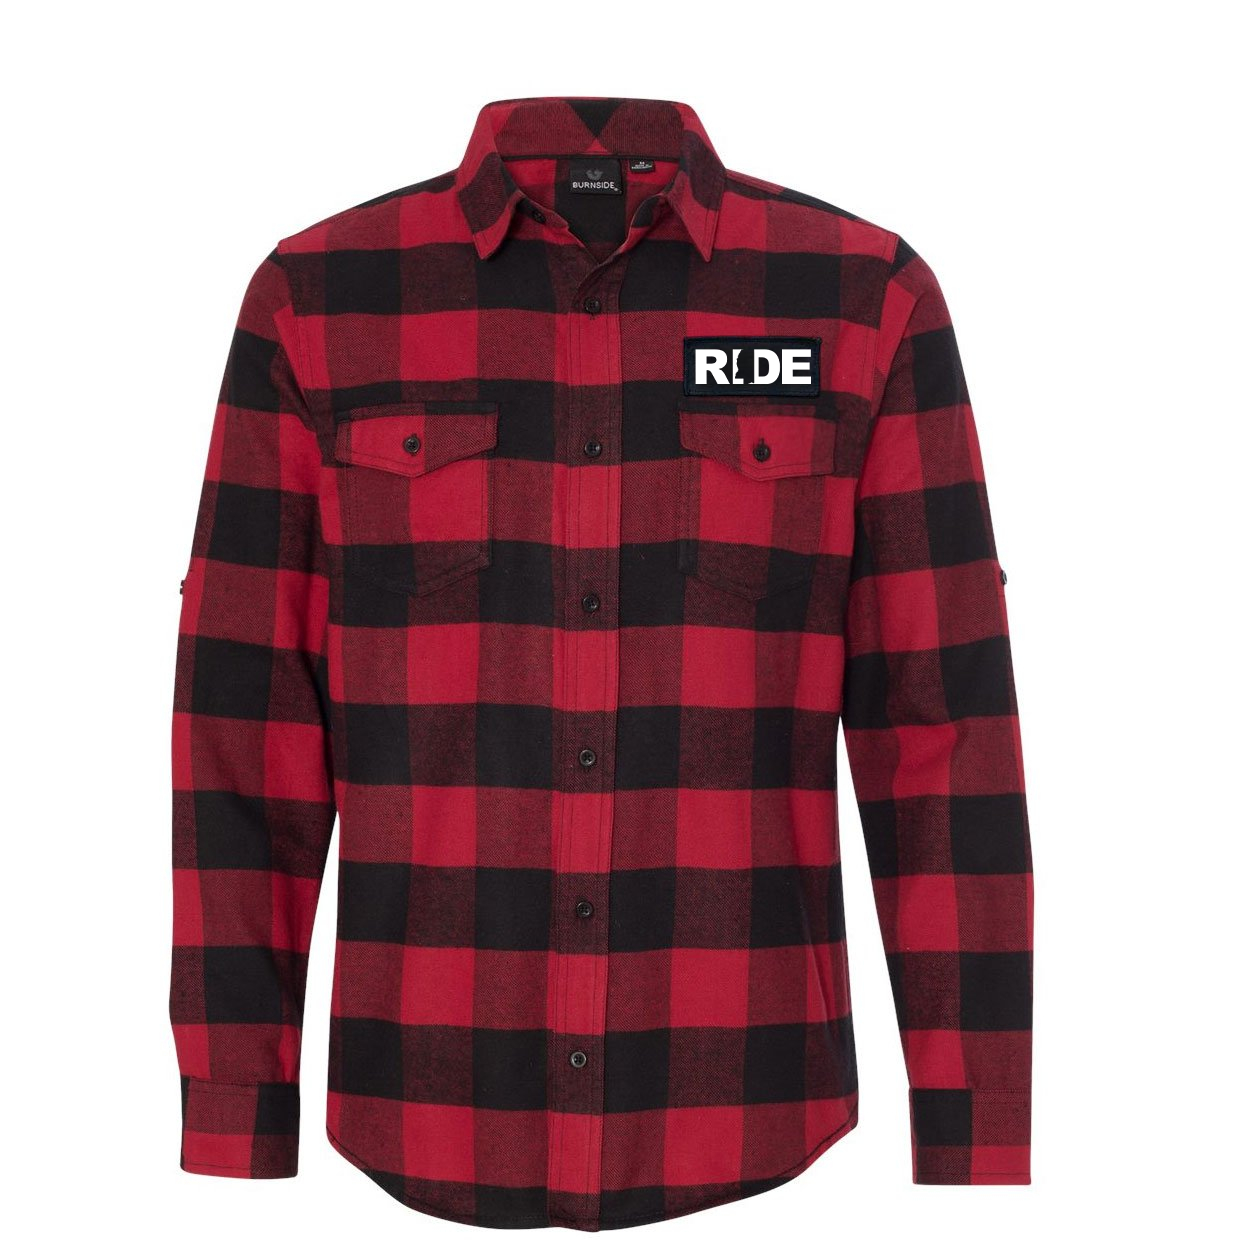 Ride Mississippi Classic Unisex Long Sleeve Woven Patch Flannel Shirt Red/Black Buffalo (White Logo)